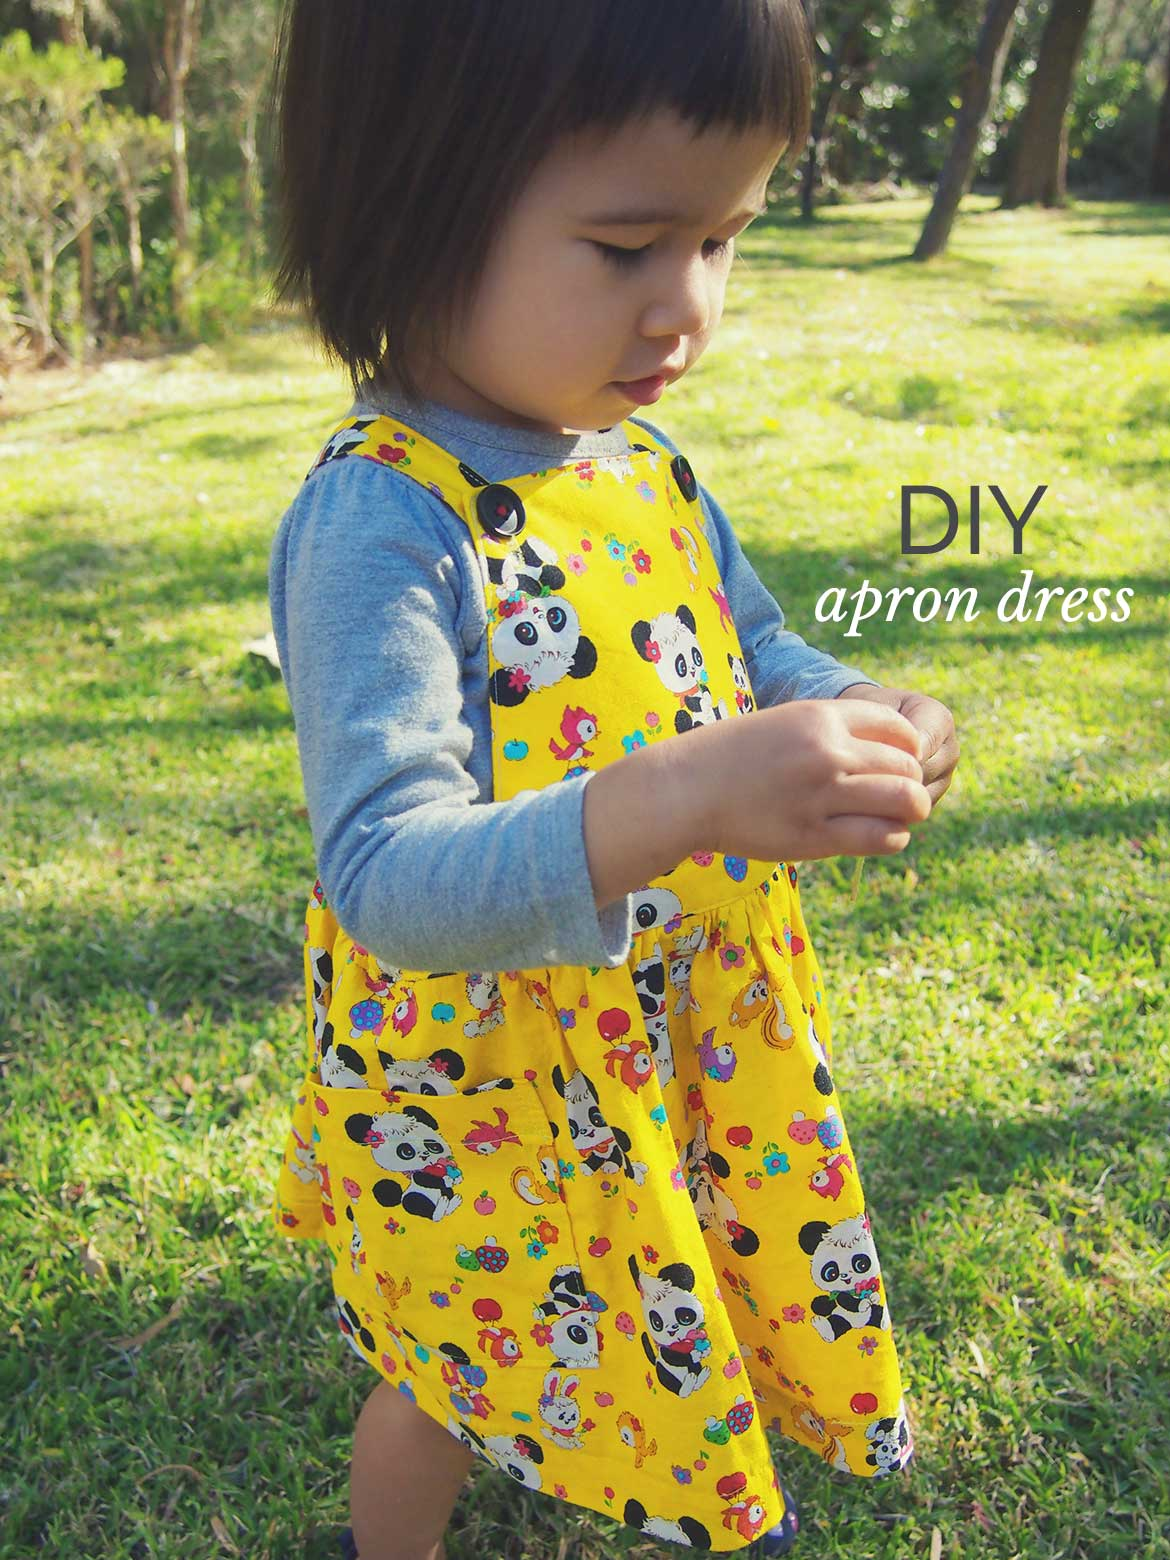 Retro panda print kids apron dress sewing pattern review sew kids apron dress sewing pattern this adorable pinafore apron dress is from the japanese sewing jeuxipadfo Images